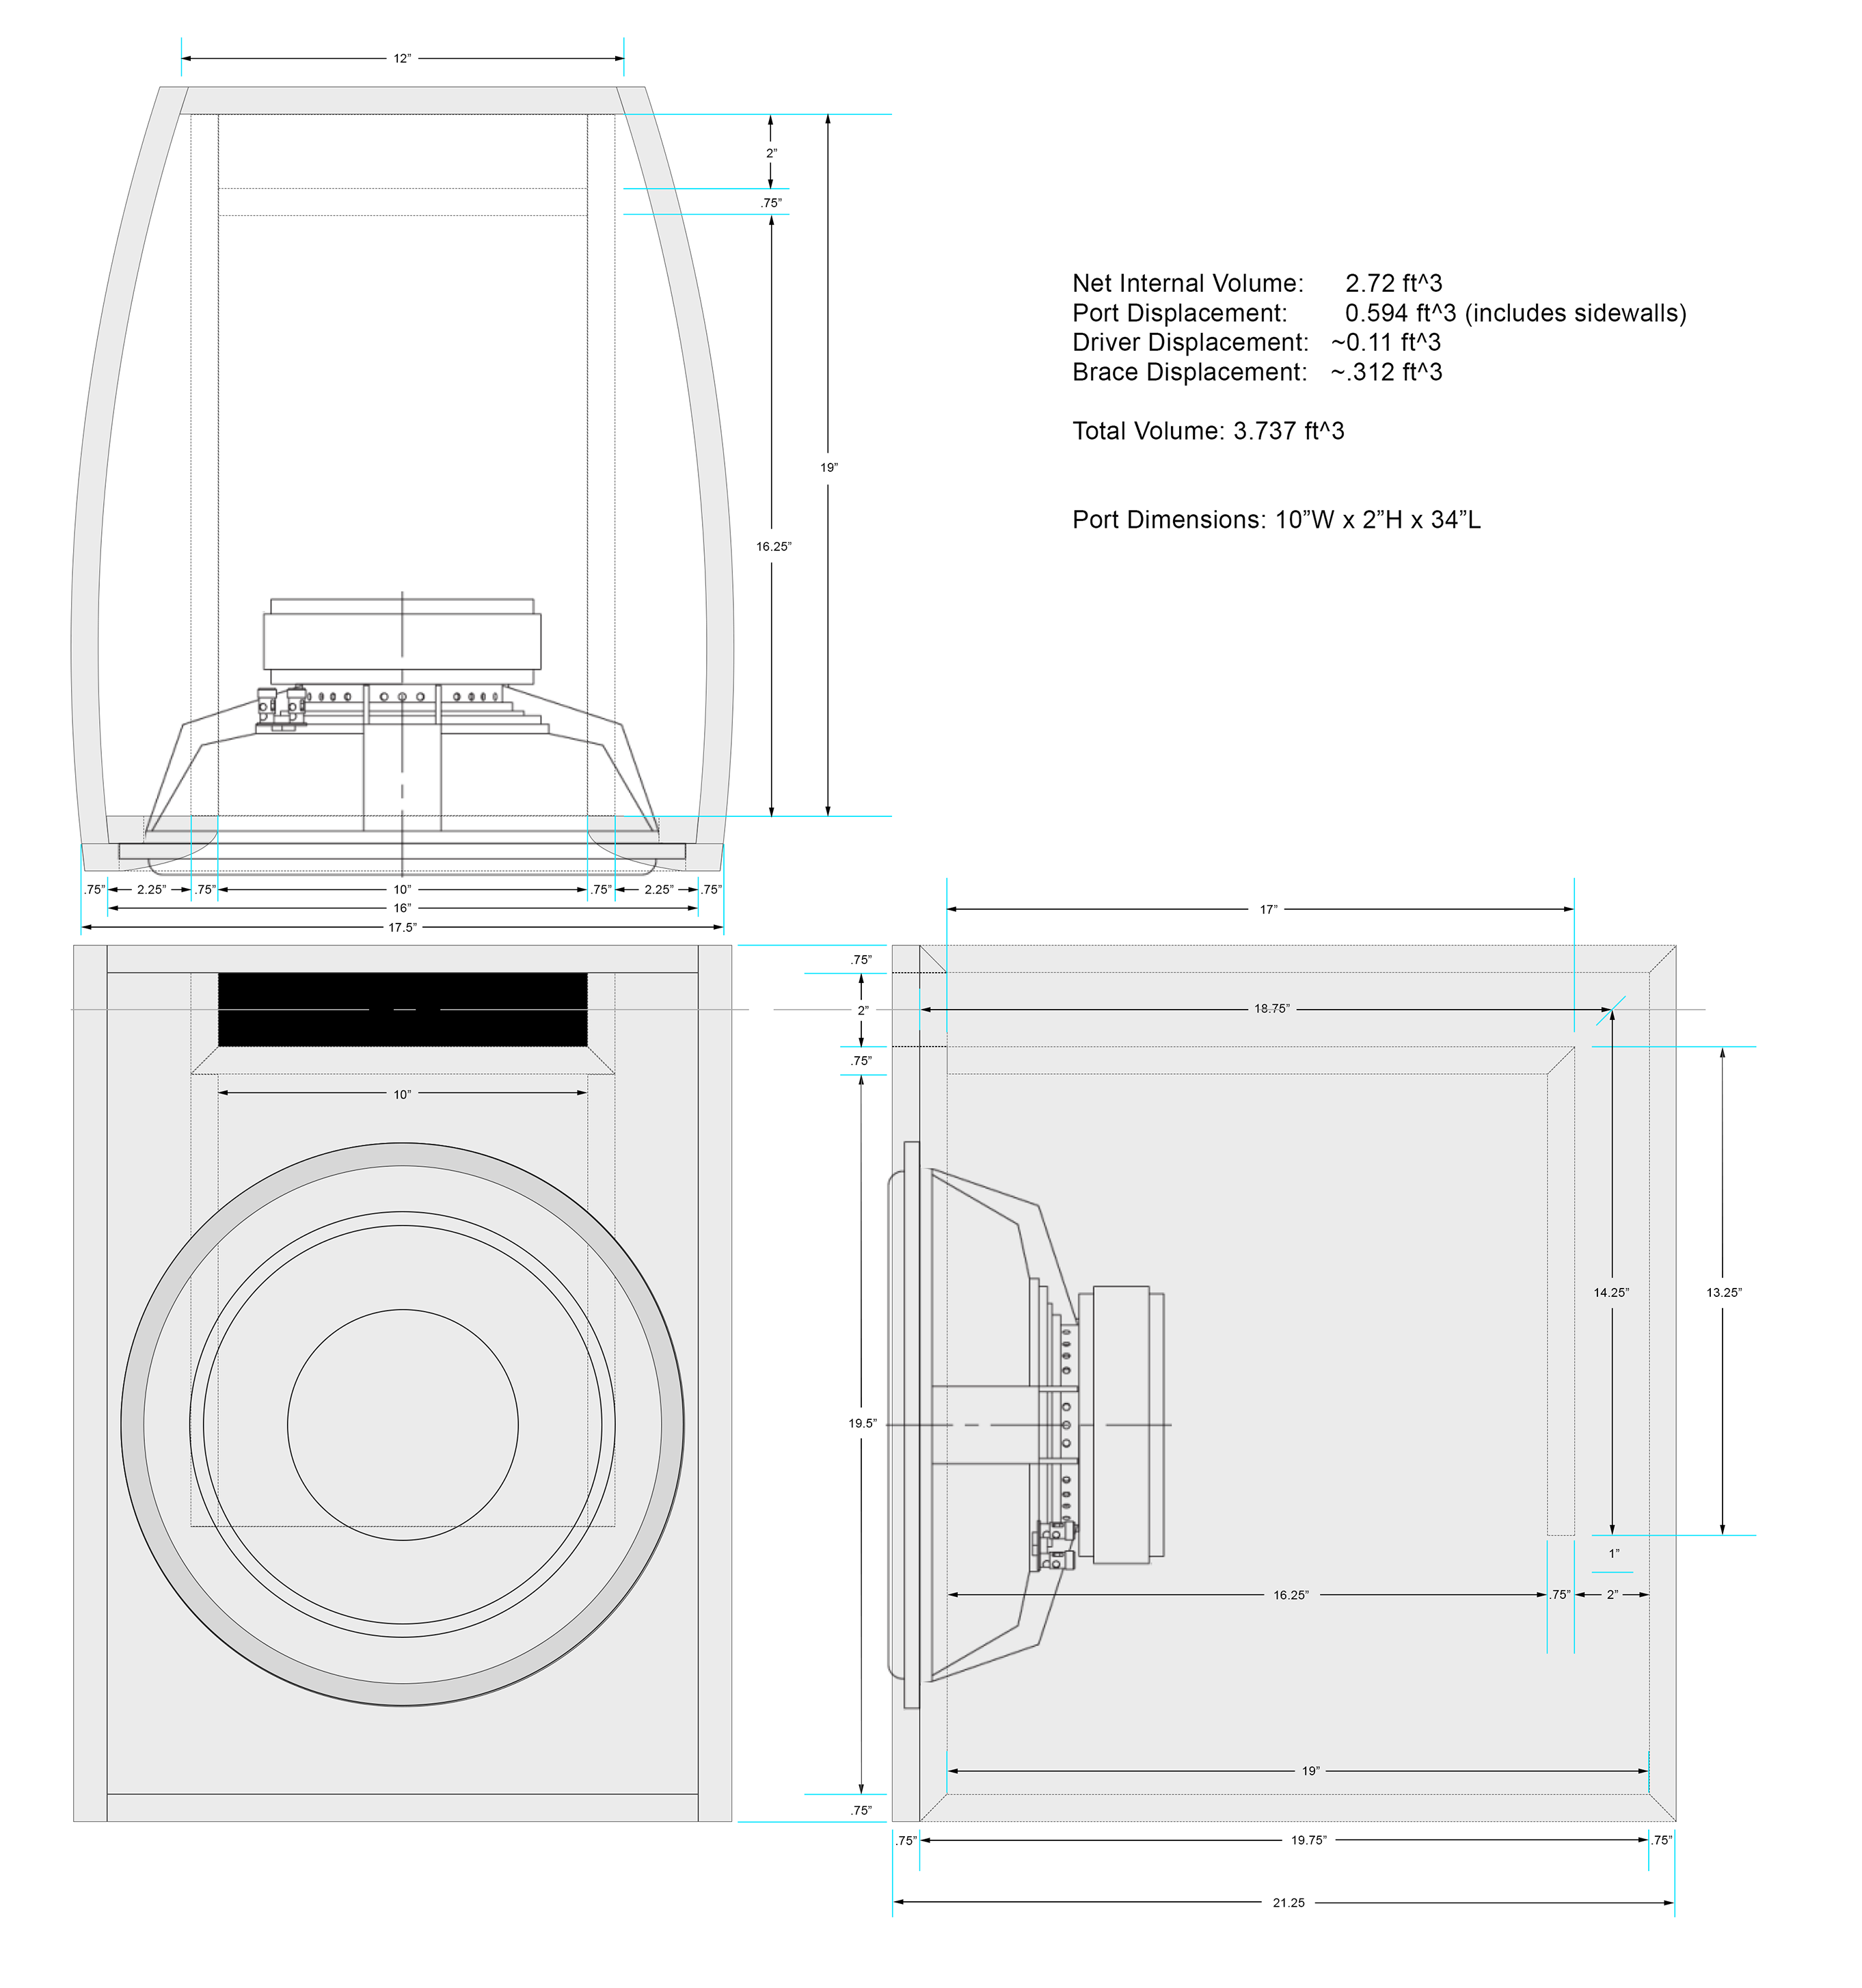 Click image for larger version  Name:RSS390HO_BuildPlans.png Views:190 Size:670.4 KB ID:2264490